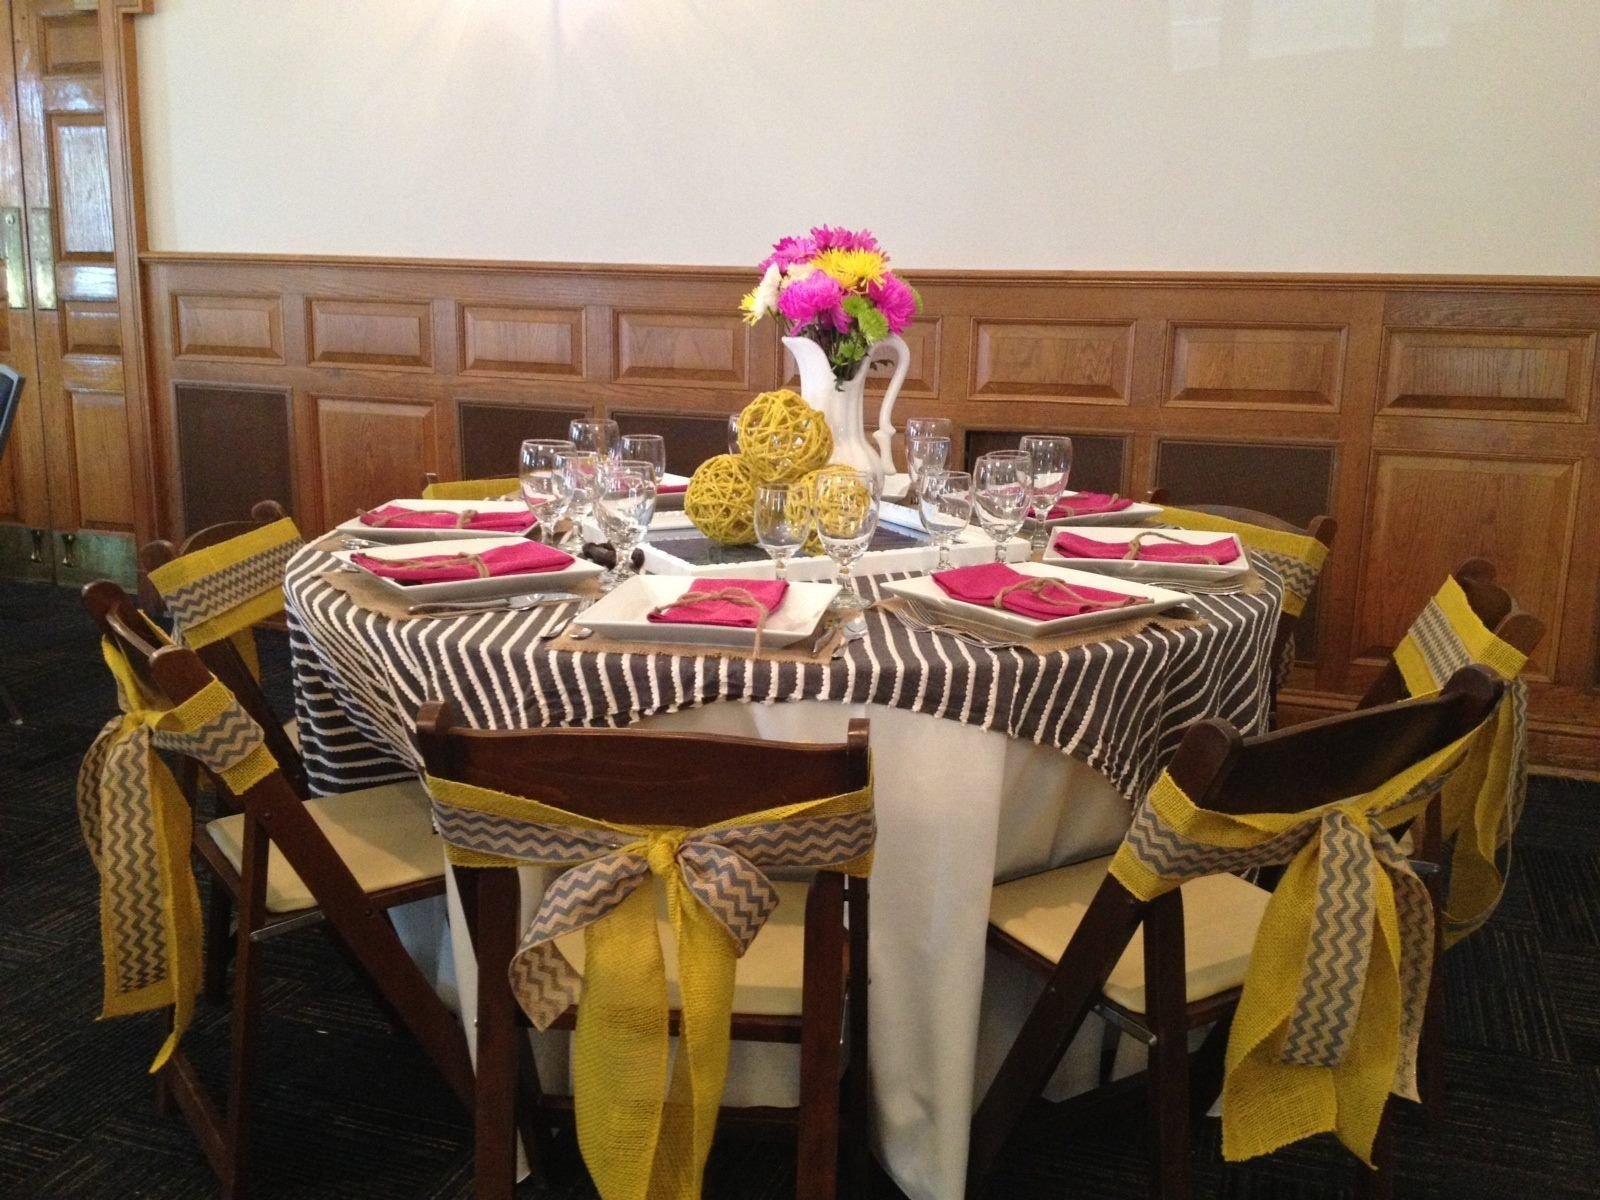 Easy summertime table setting. Striped fabric overlapped makes an inexpensive but interesting table topper. Burlap ribbon for chair backs.